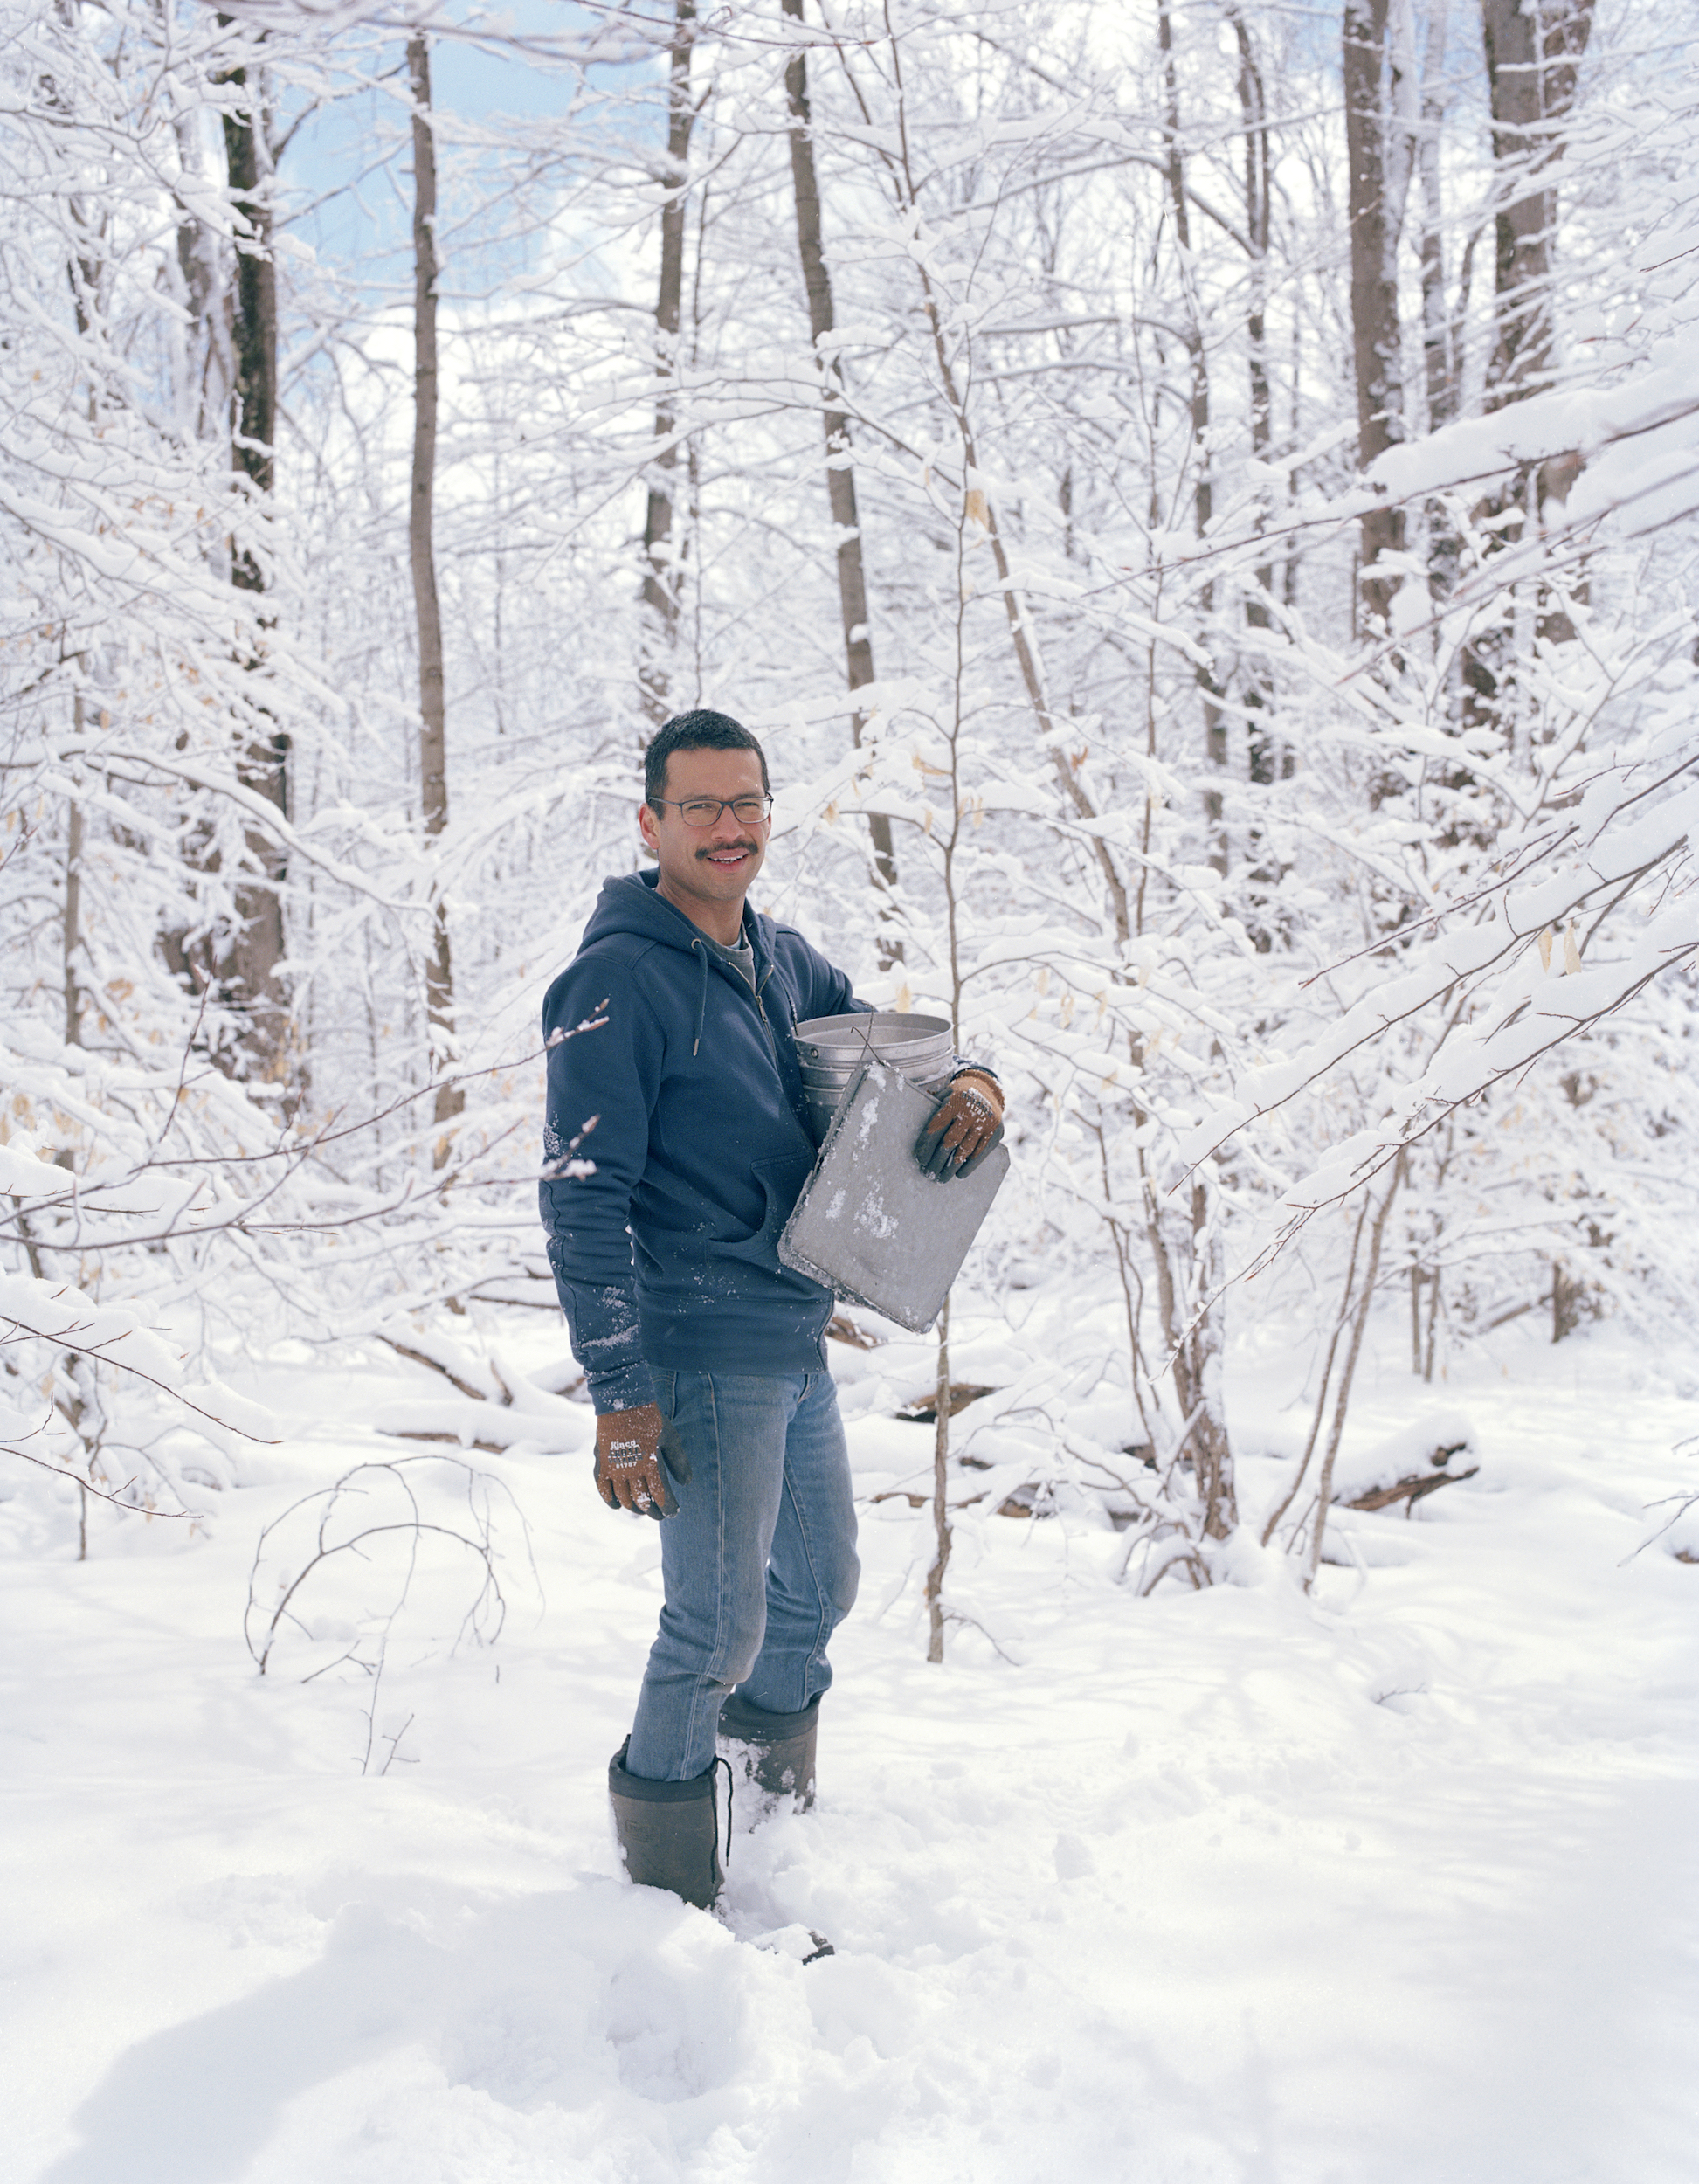 Simon collecting sap buckets in January 2018, a few weeks before him and Robert moved to Detroit. They moved to Stamford from New York City.